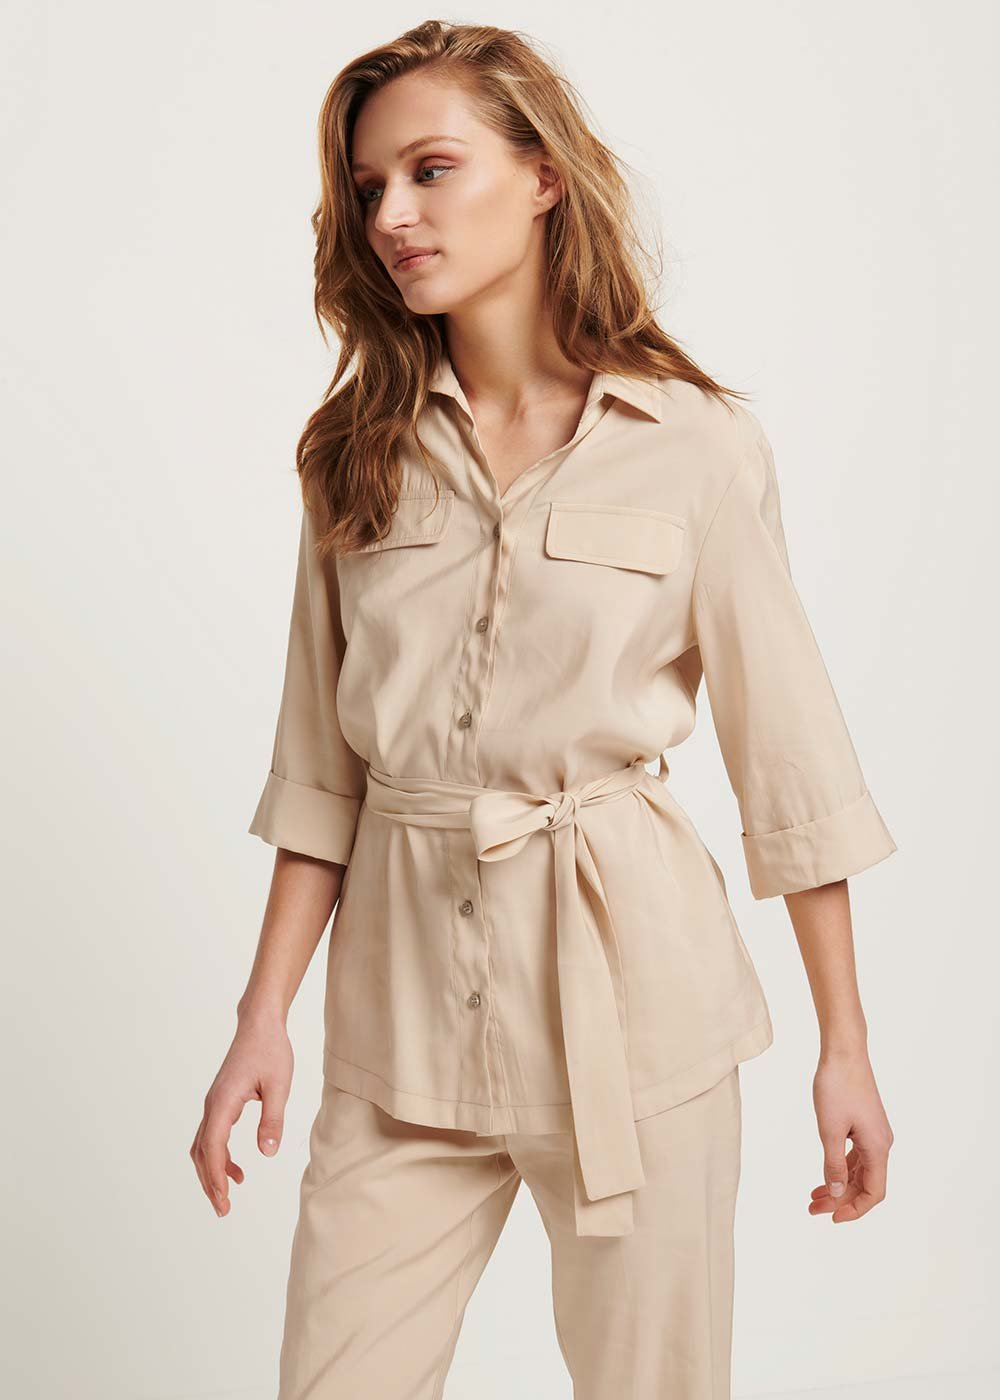 Cliven shirt with pockets - Ginger - Woman